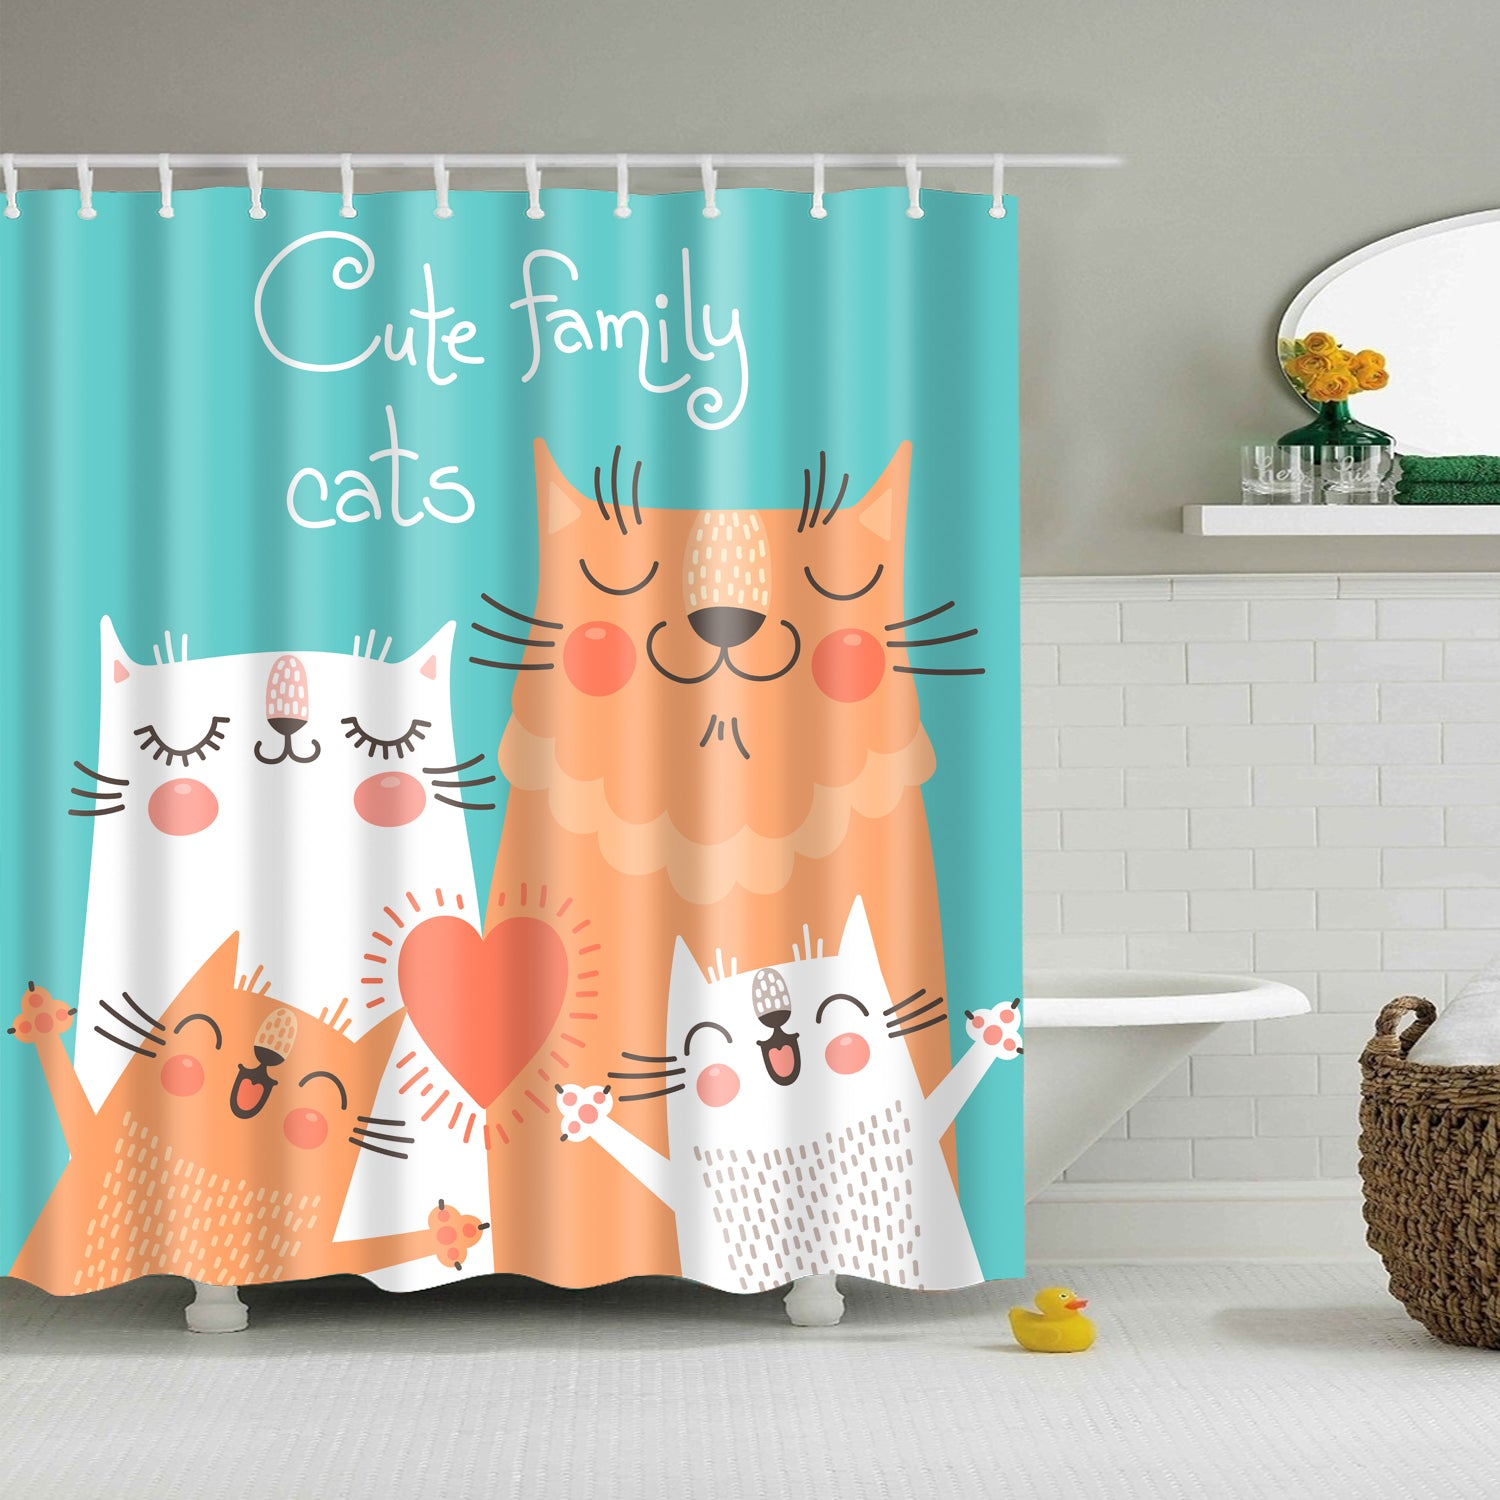 Cute Cartoon Family Cats Shower Curtain | GoJeek